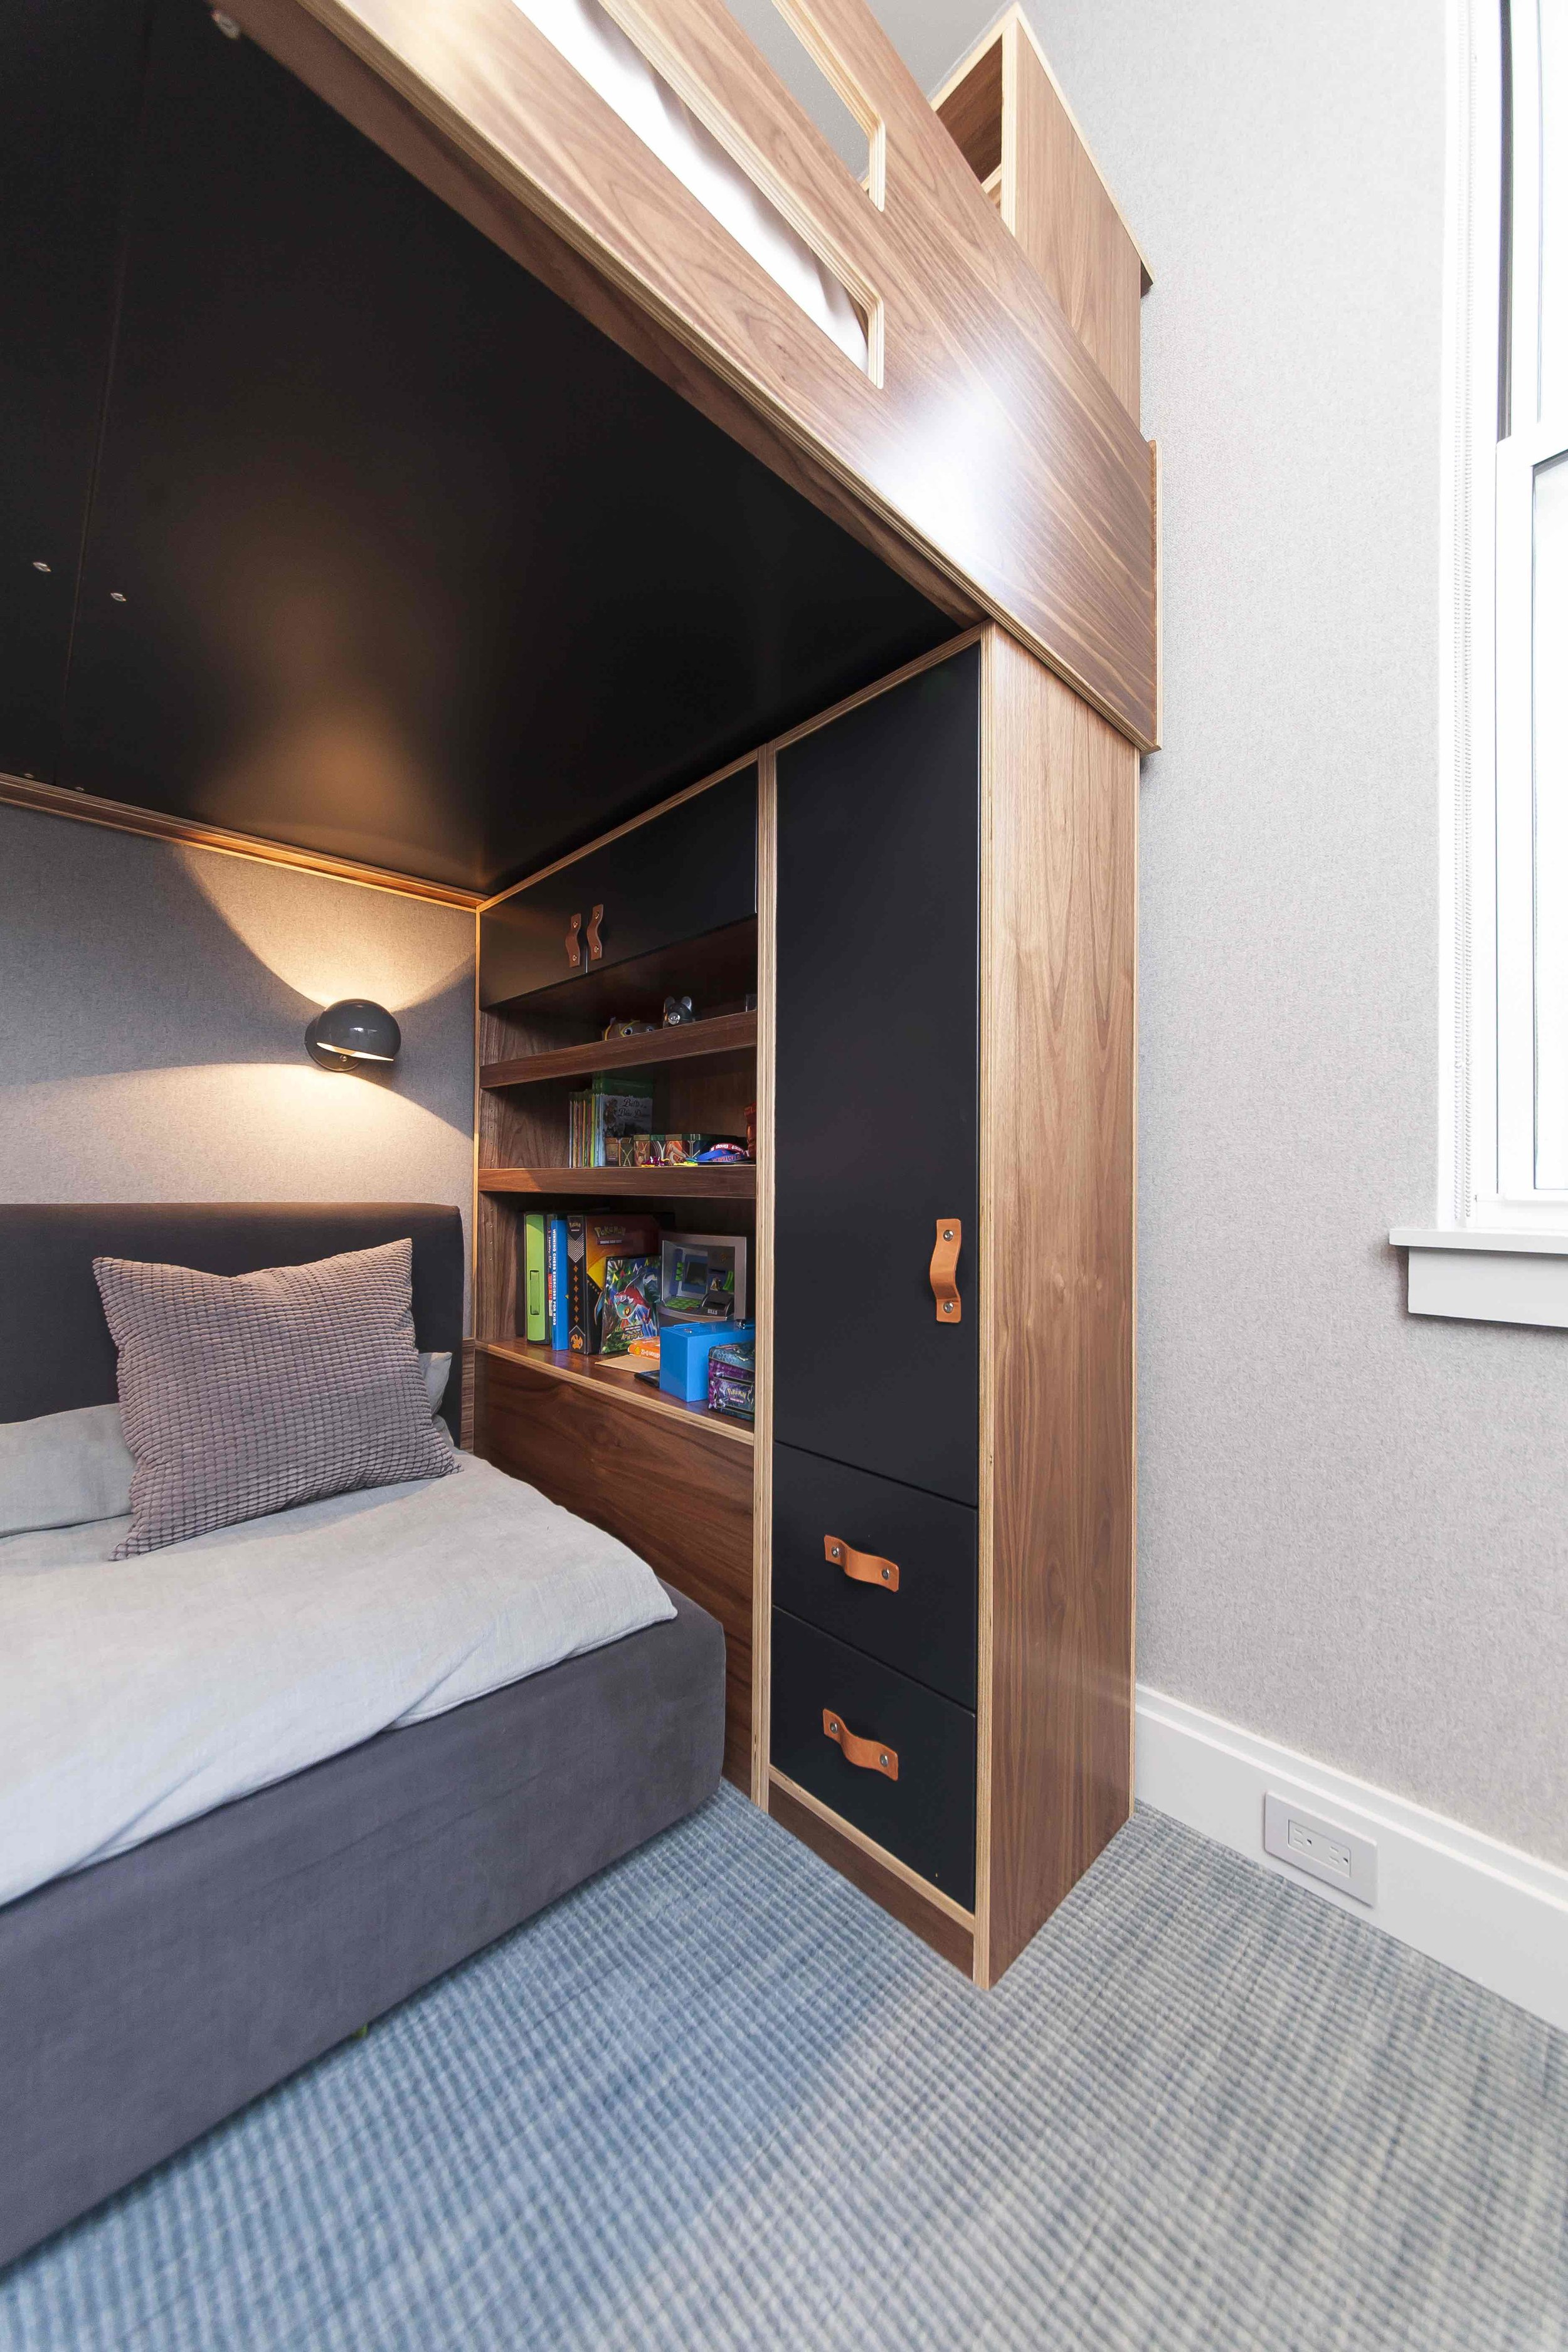 Custom cabinet holding up a loft bed.